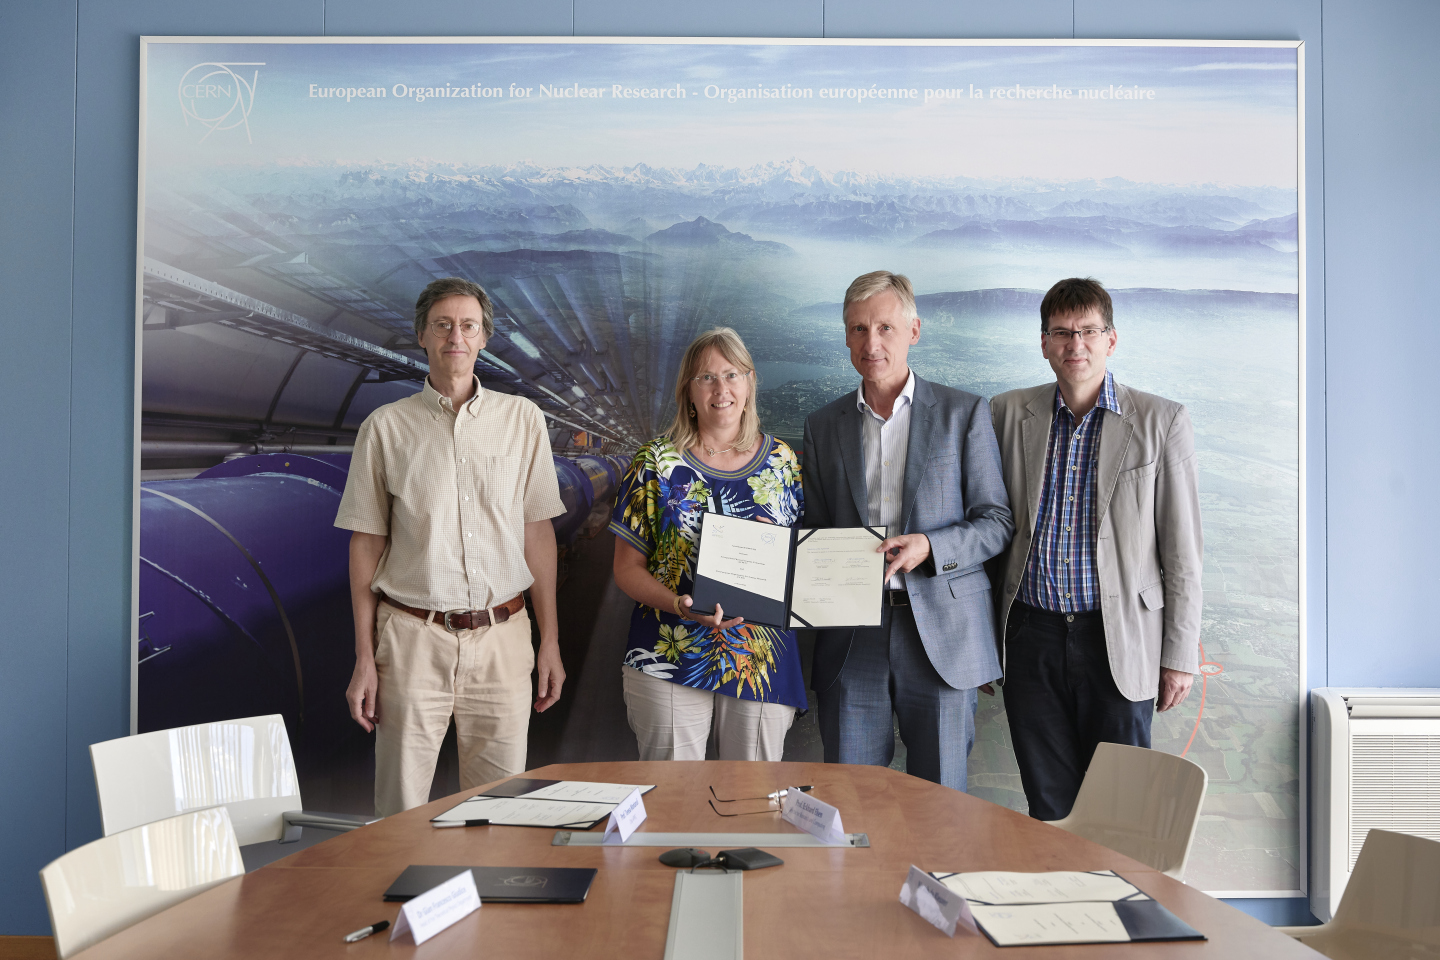 Ceremony CERN-APPEC signature of Agreement